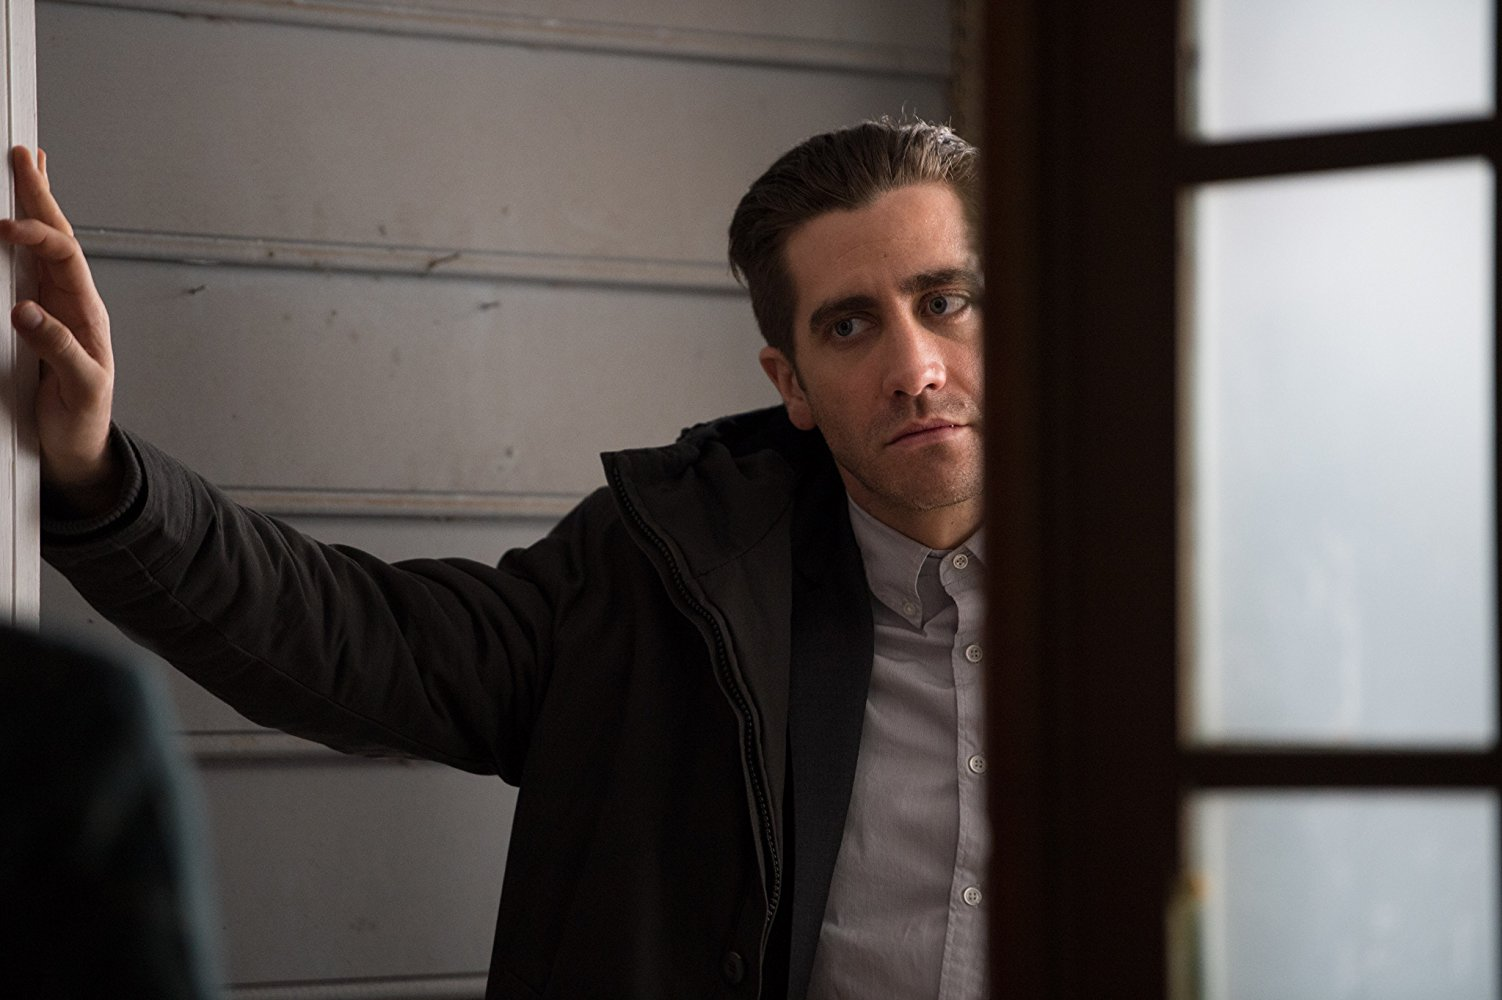 jake gyllenhaal in prisoners (2013) best roles of jake gyllenhaal